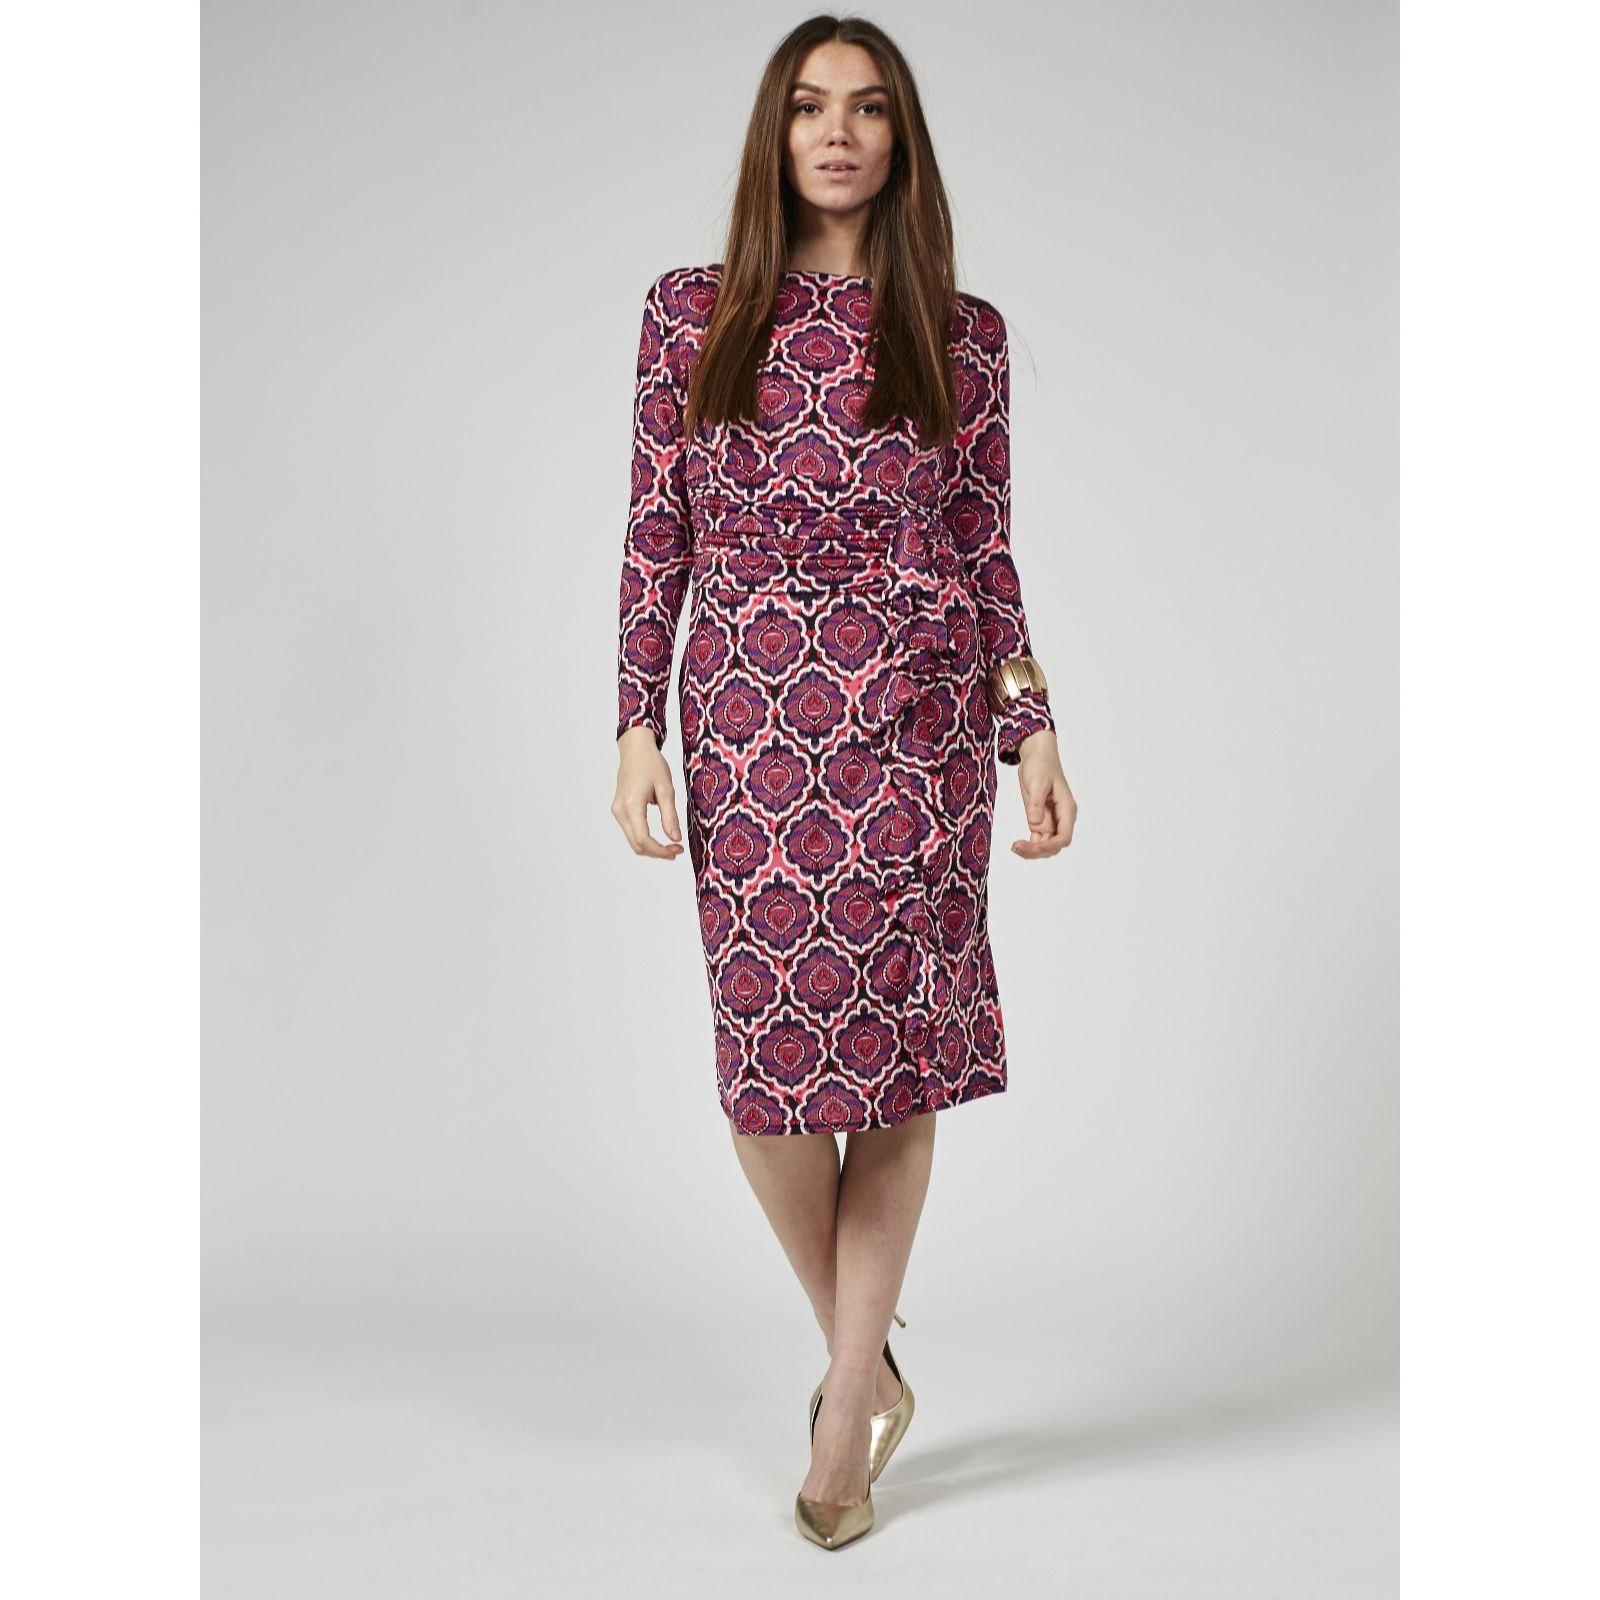 a0114856b5 Lola Printed Ruffle Front Long Sleeve Dress by Onjenu London - QVC ...